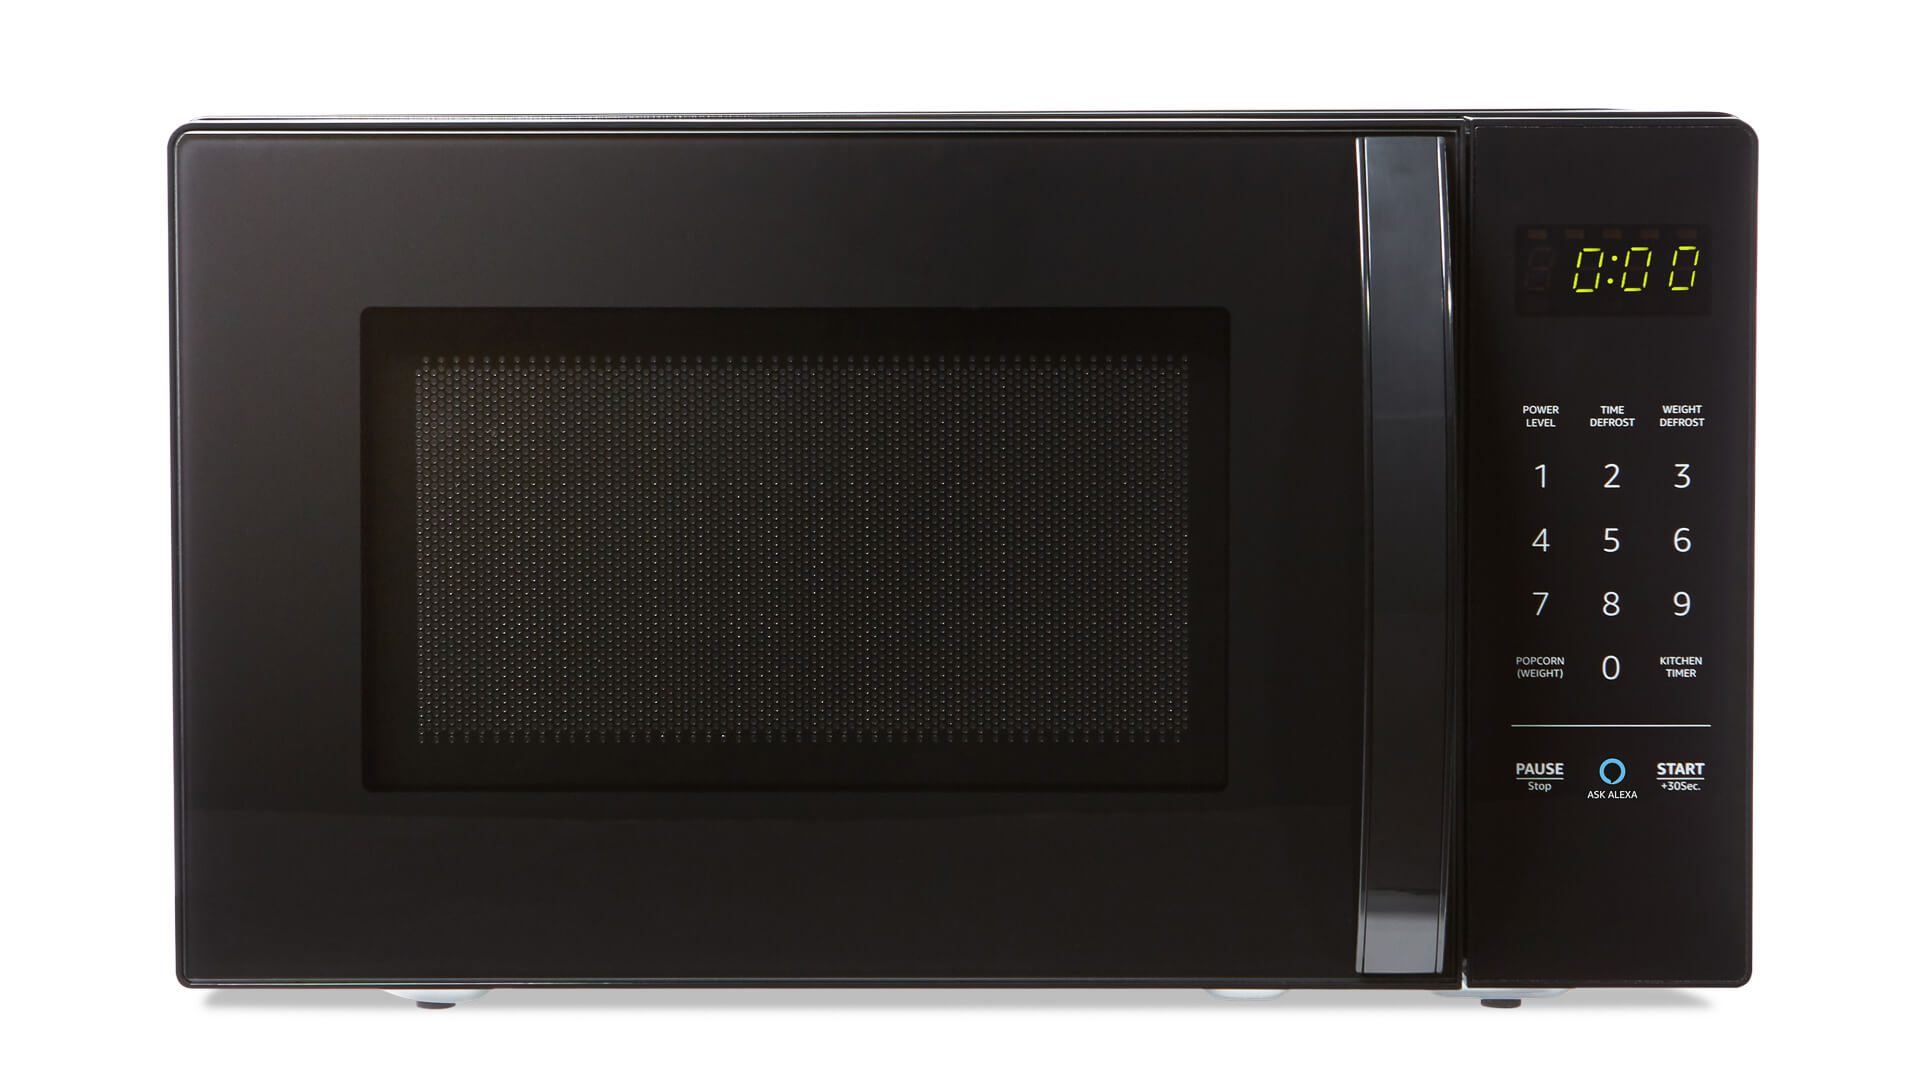 Amazon Echo Microwave black